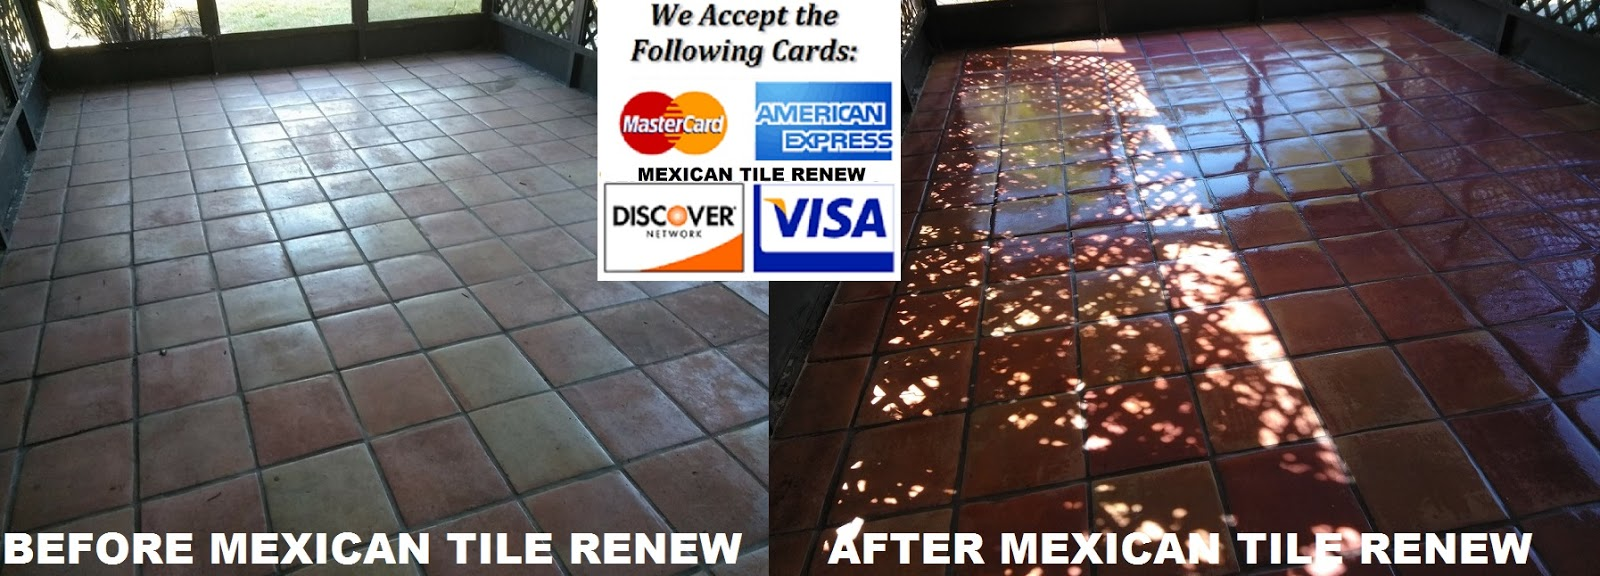 Mexican tile renew sarasota fl cleaning sealing mexican tile renew project in bradenton fl with rubber pad stuck to the floor call 941 926 7444 dailygadgetfo Image collections